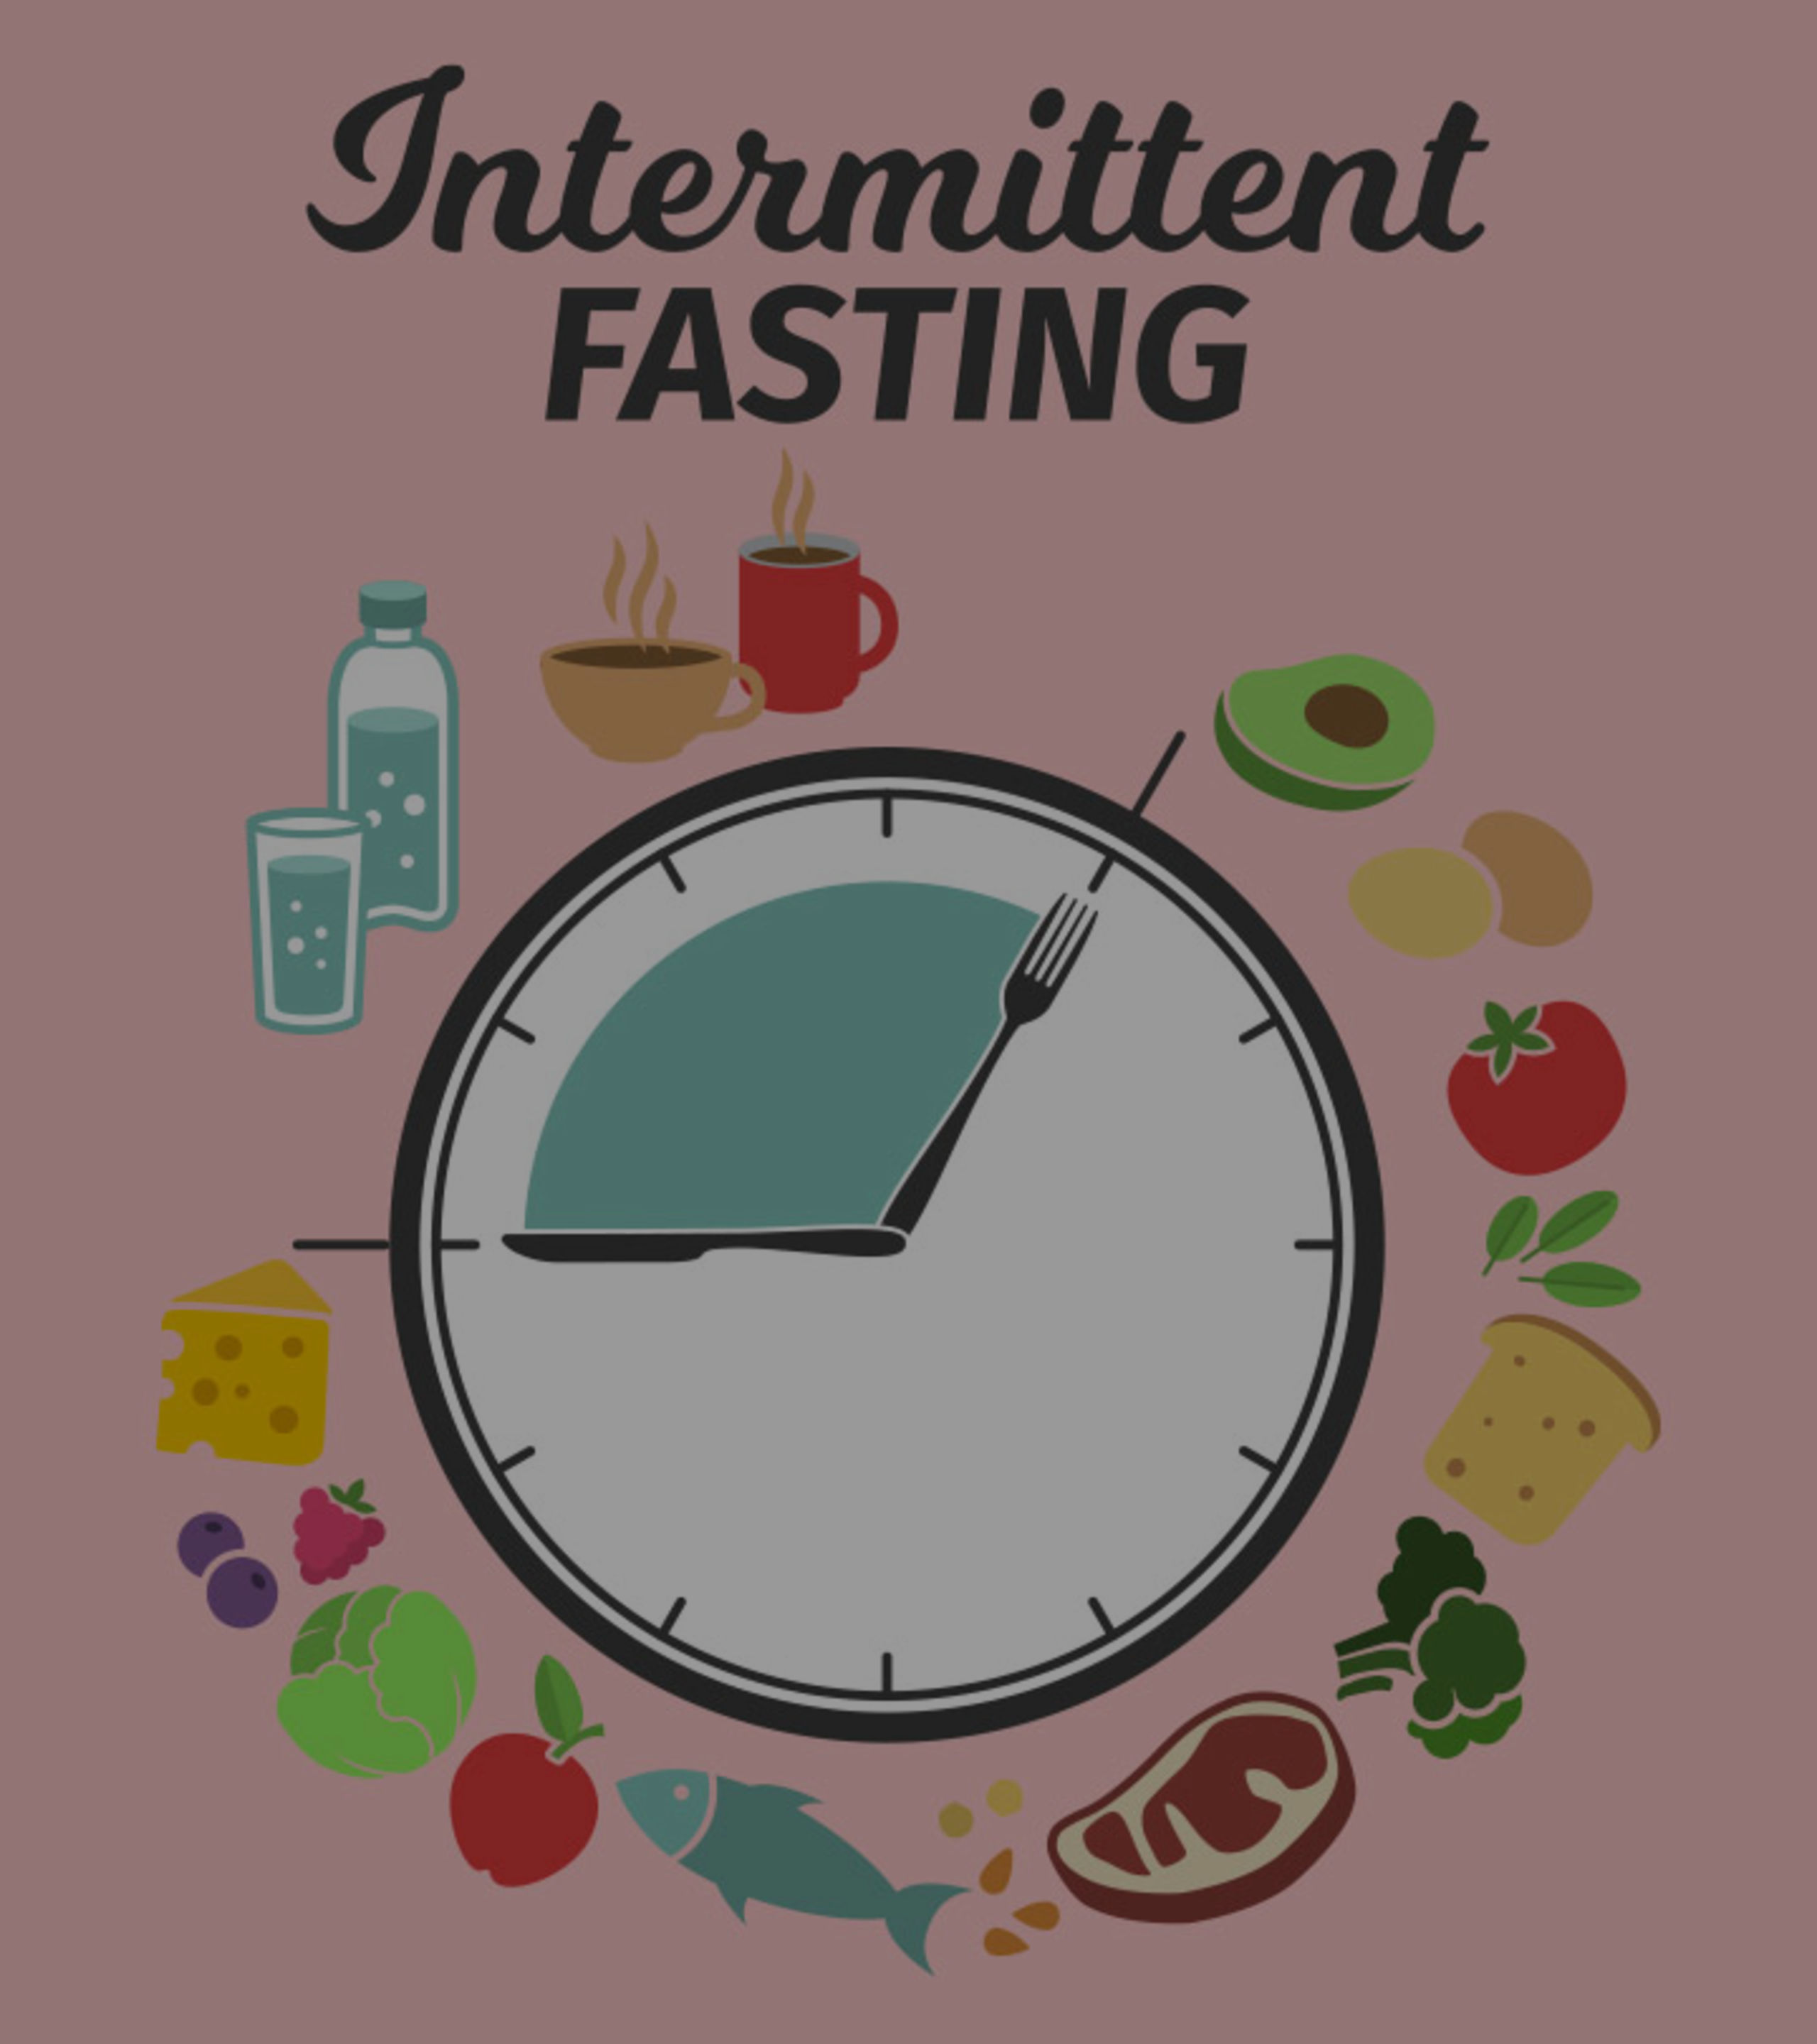 Fasting gains traction as health, weight loss strategy